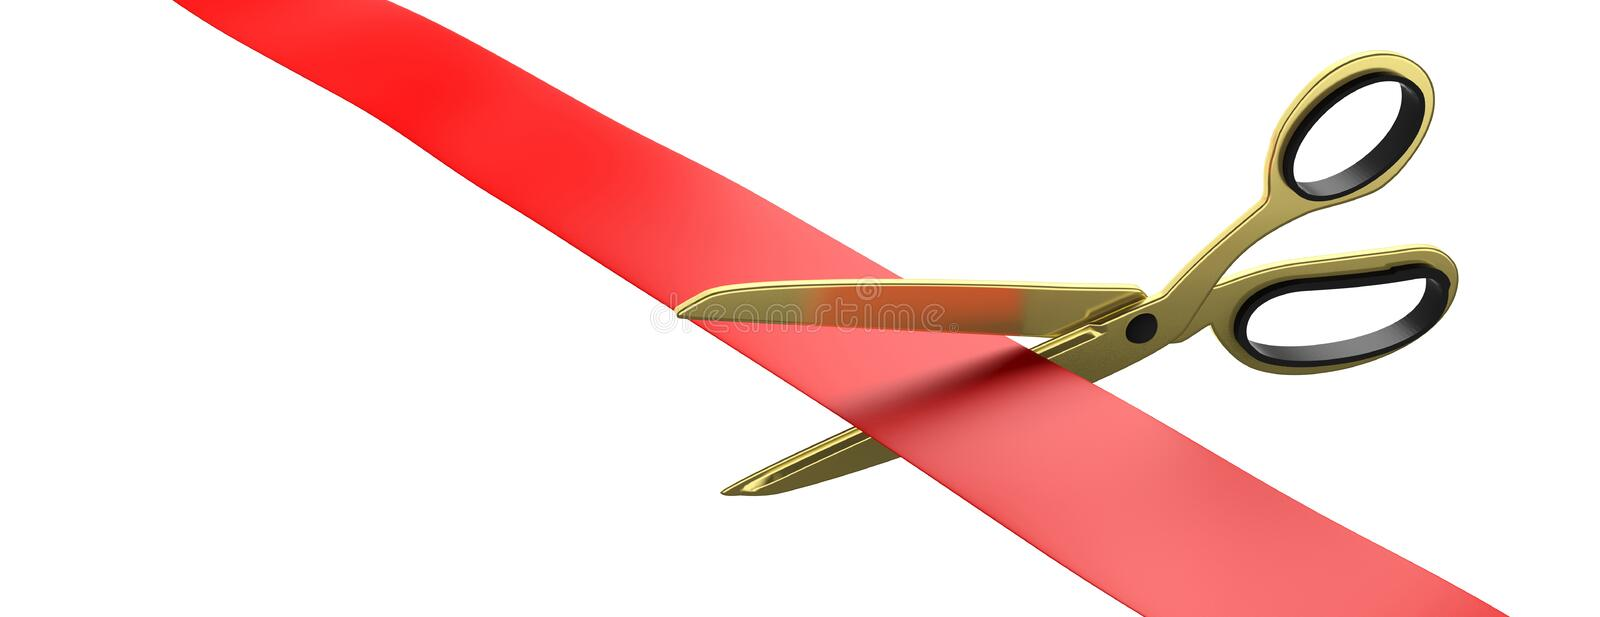 Scissors cutting red silk ribbon isolated cutout against white background, banner. 3d illustration. Grand opening concept. Gold scissors cutting red silk ribbon vector illustration